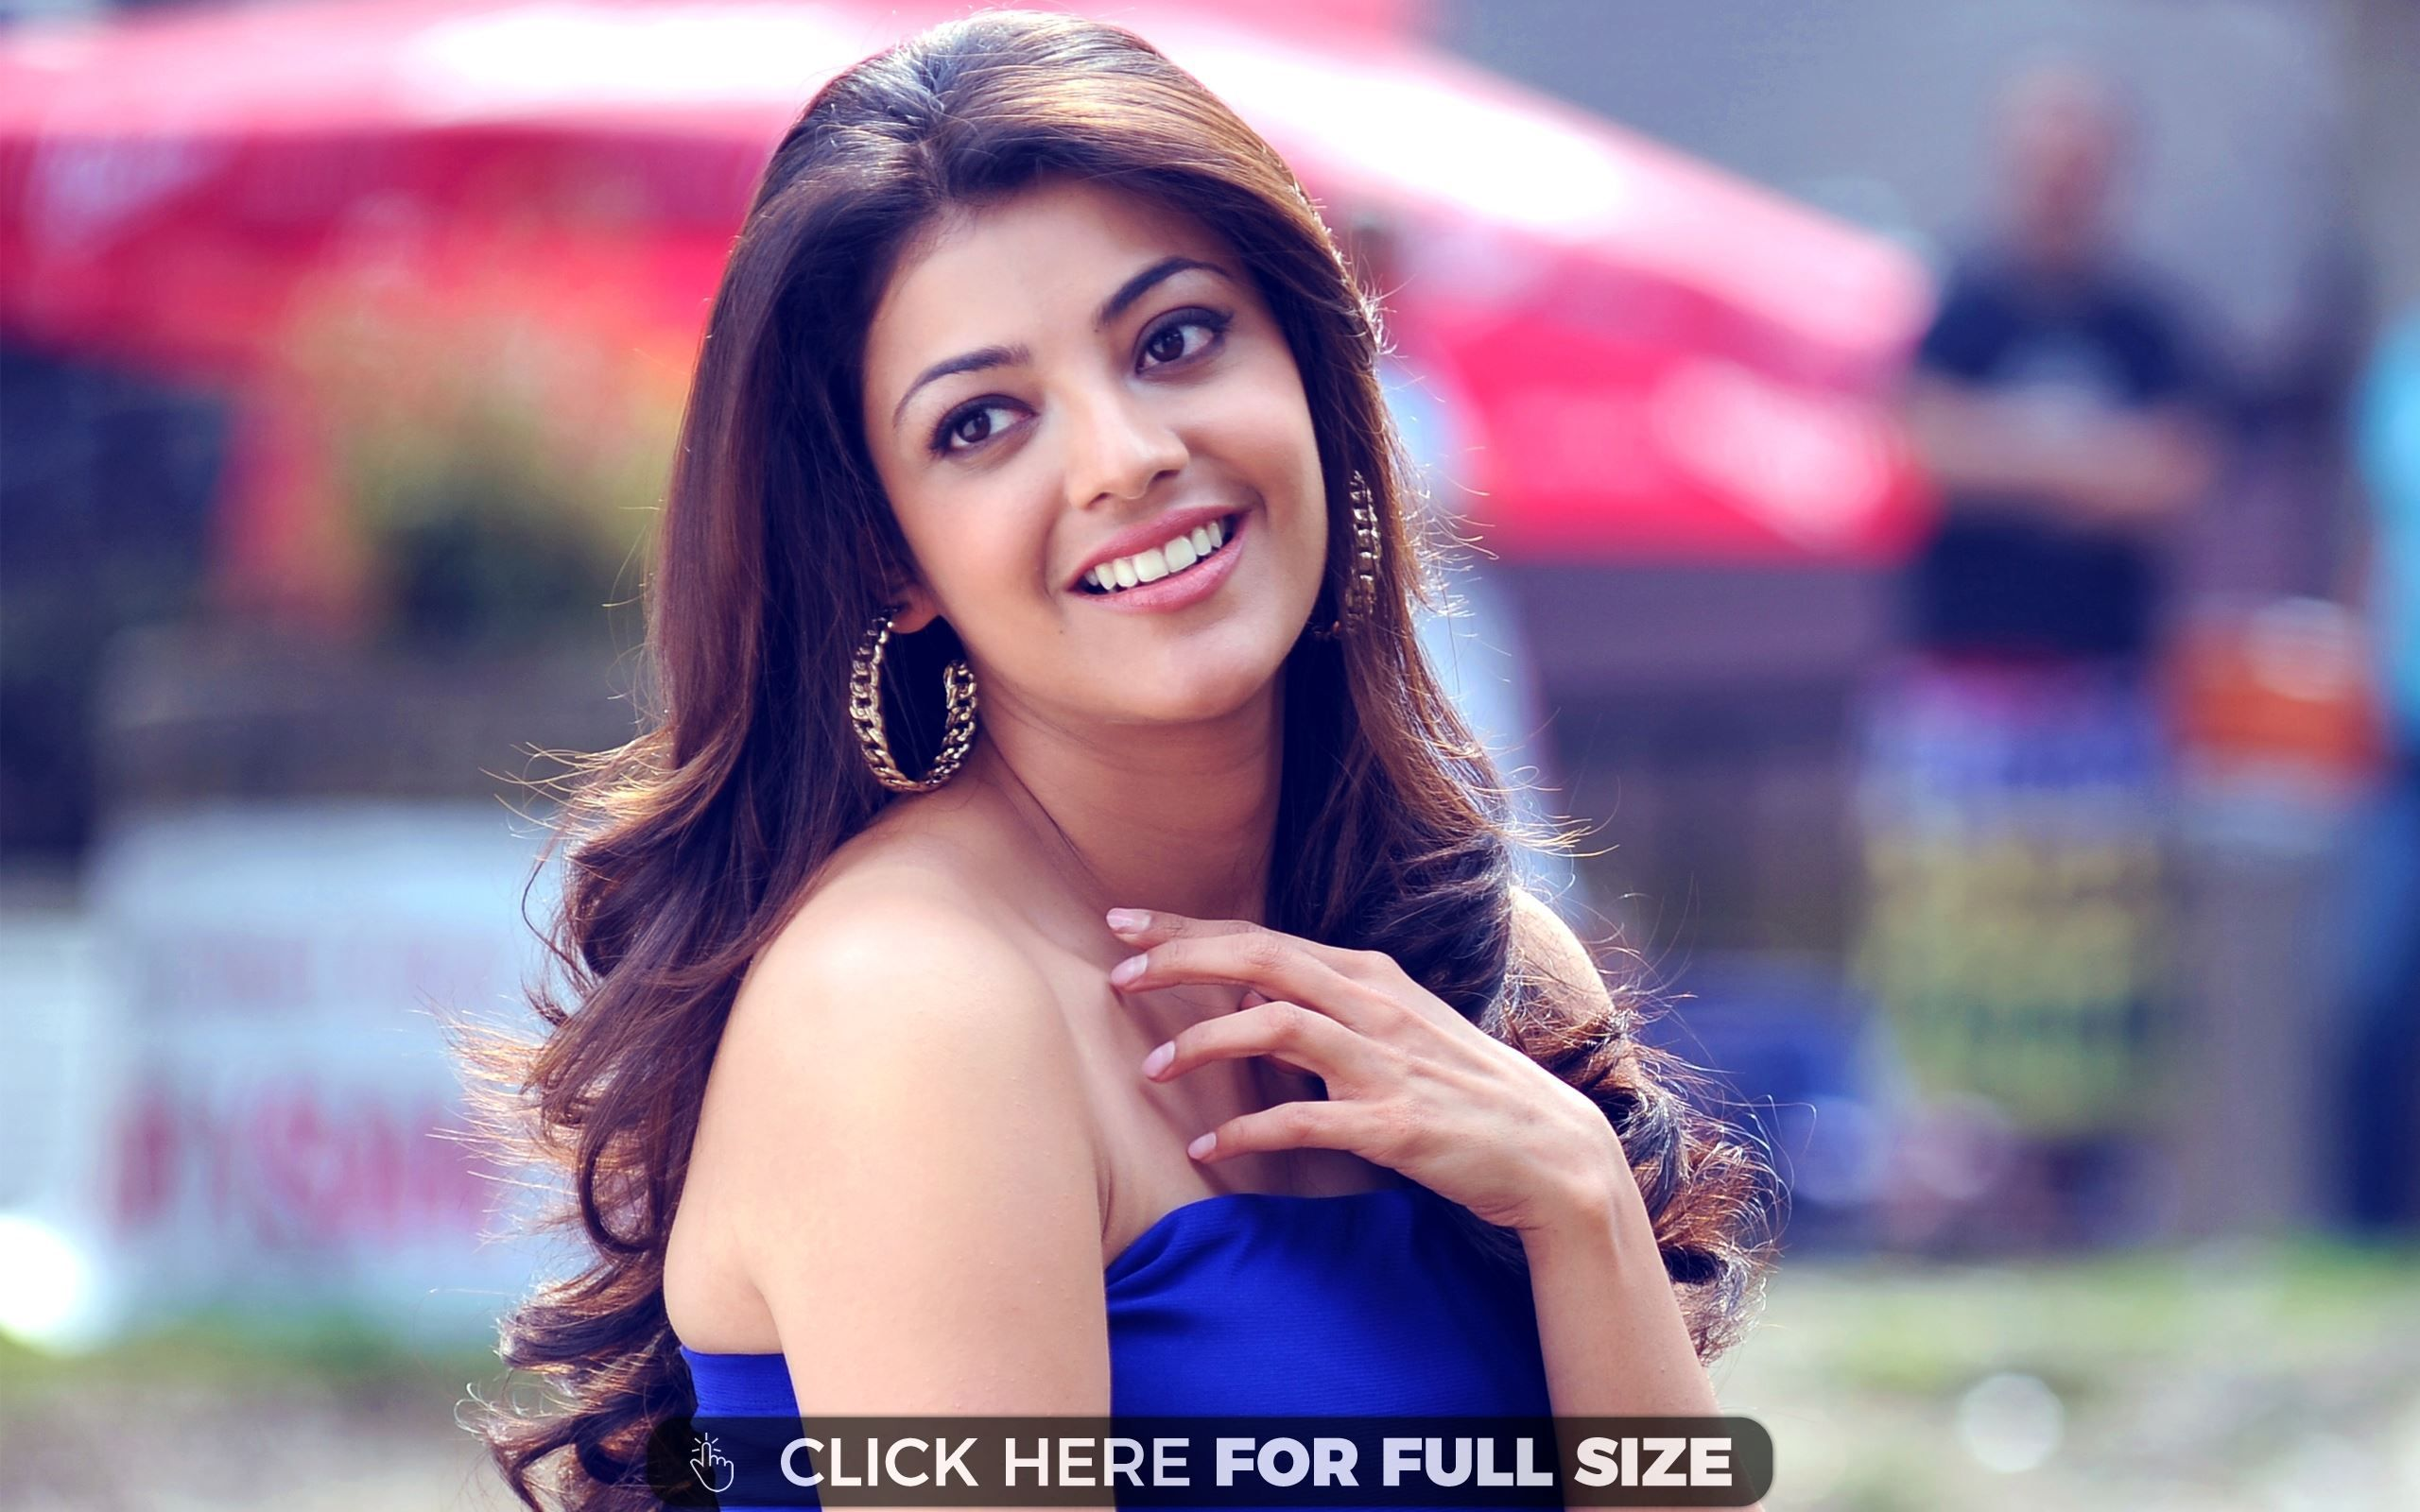 Kajal agarwal jilla wallpapers 61 wallpapers wallpapers for kajal agarwal jilla wallpapers 61 wallpapers wallpapers for desktop altavistaventures Choice Image